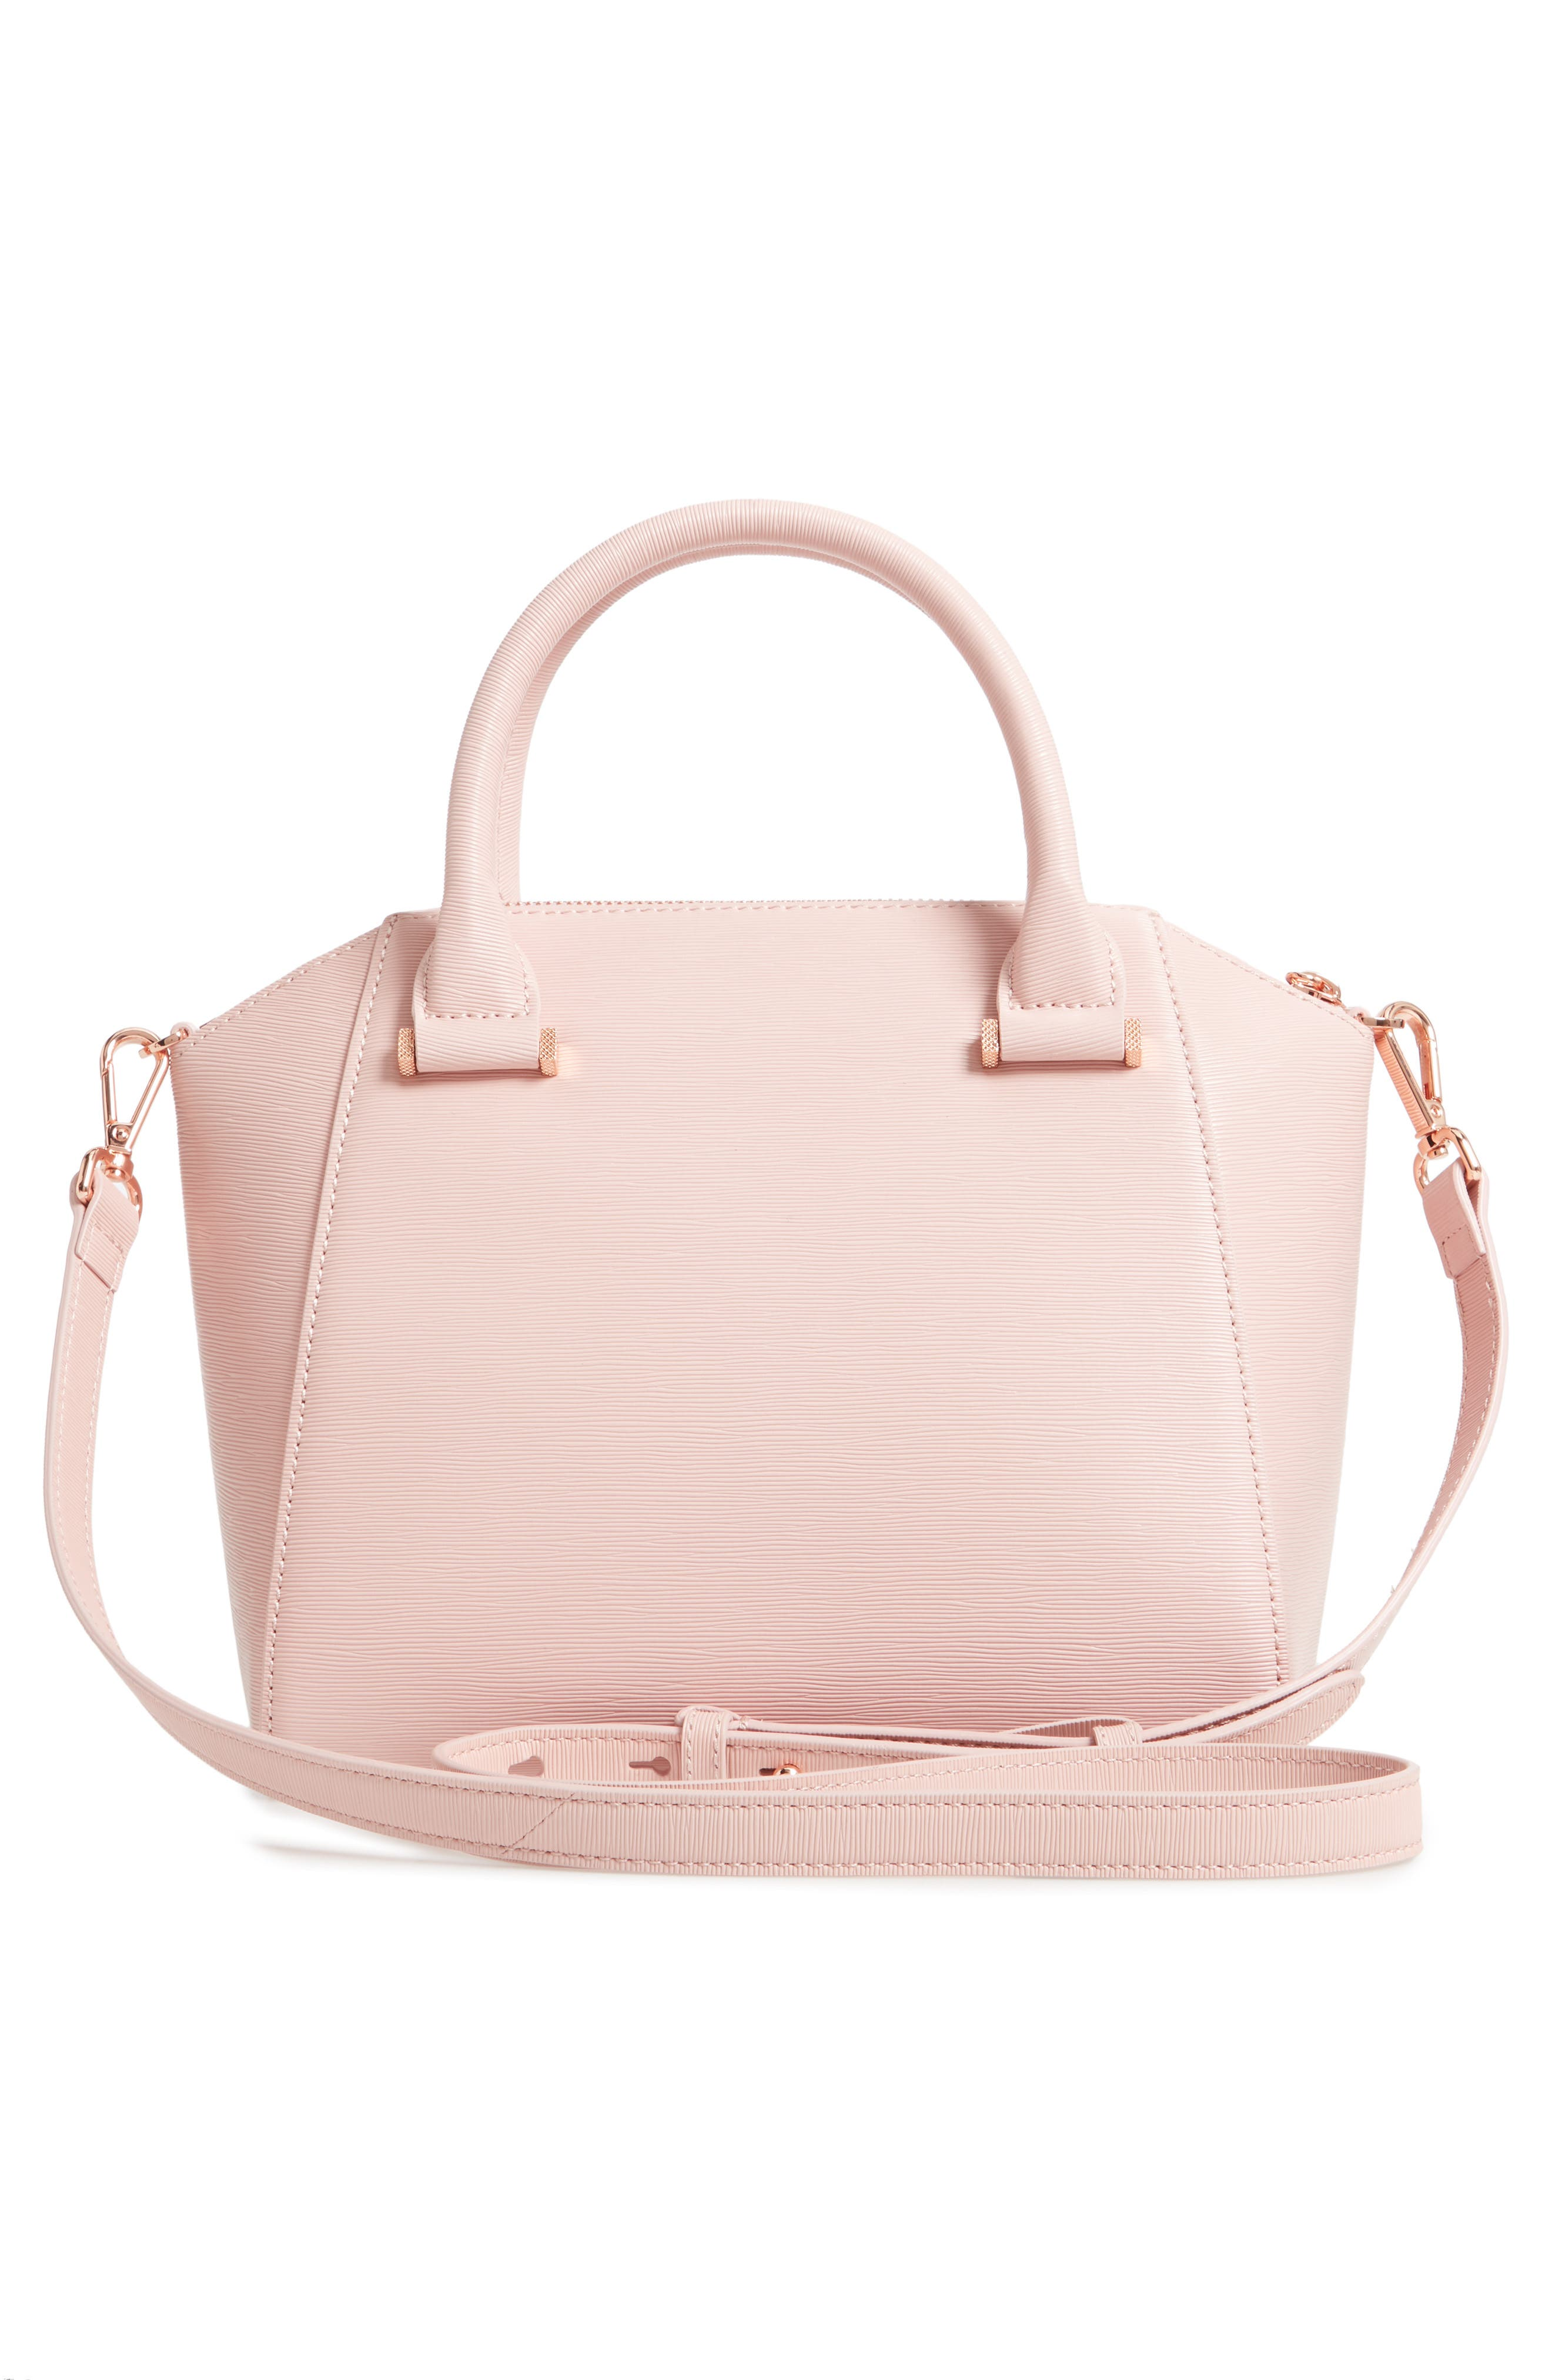 Bow Tote,                             Alternate thumbnail 3, color,                             LIGHT PINK